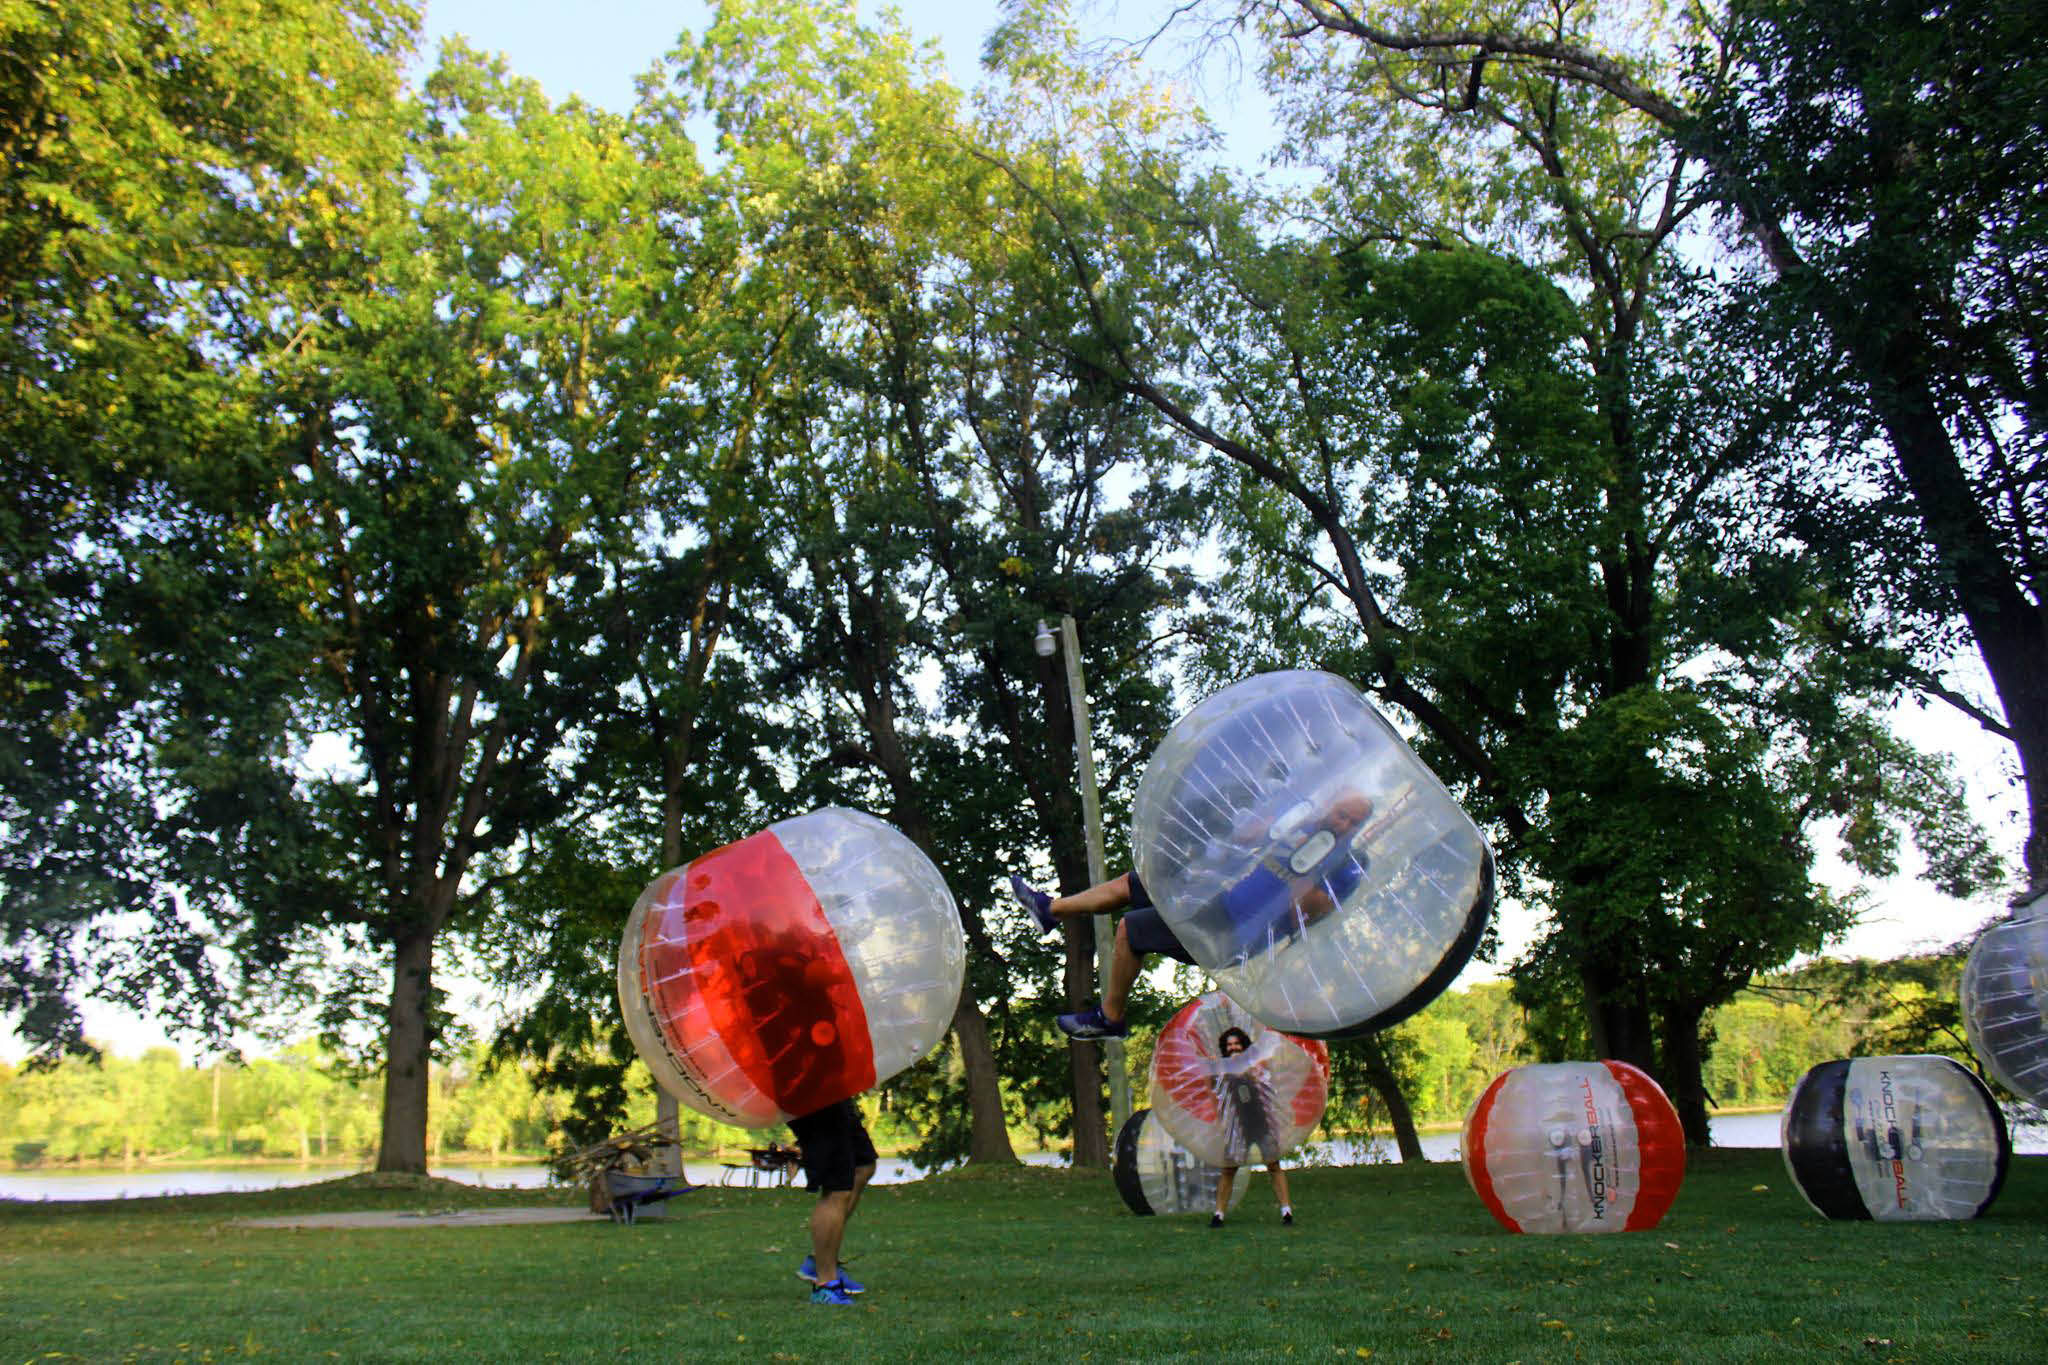 Also known as bubble soccer, knockerball offers loads of entertainment.